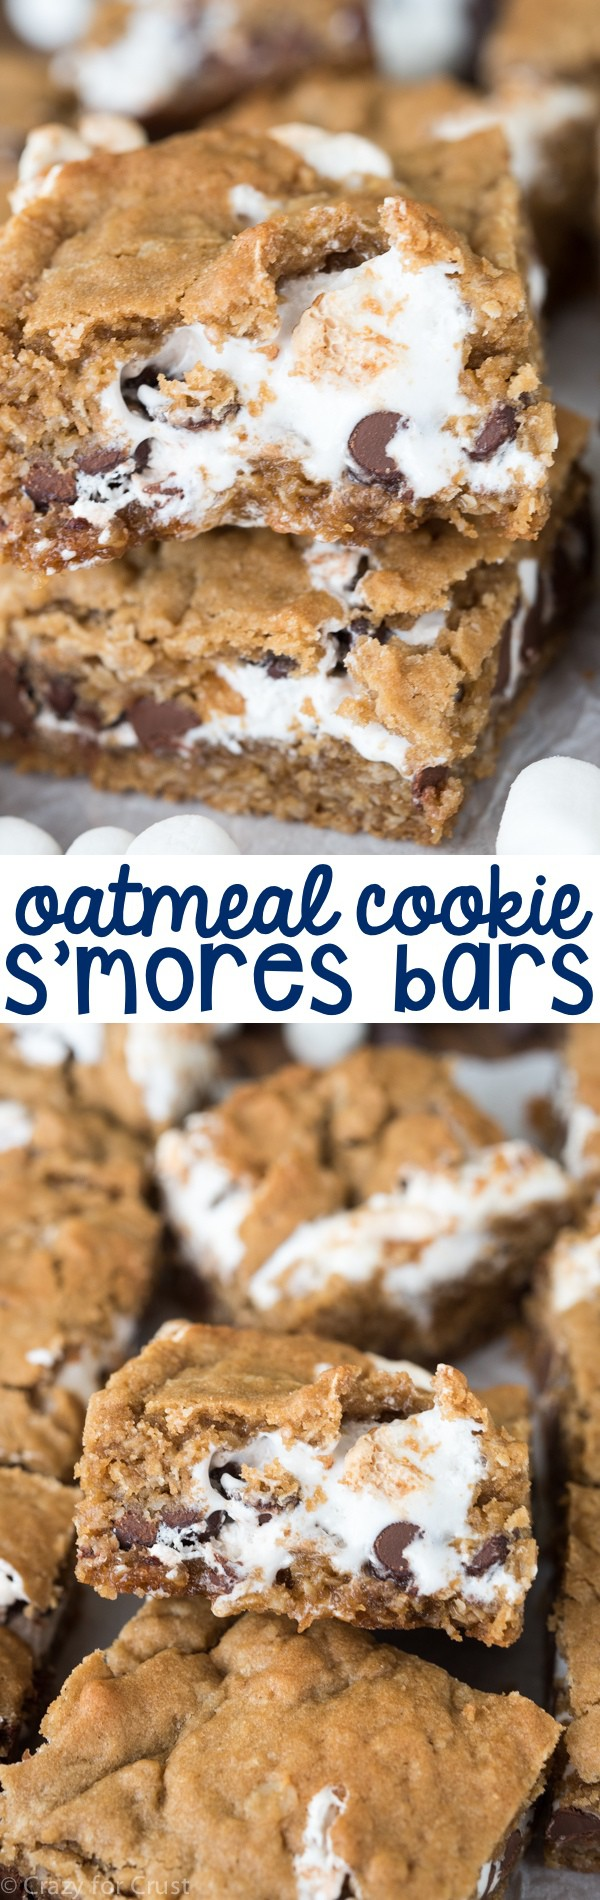 Easy Oatmeal Cookie S'mores Bars Recipe! A gooey oatmeal cookie bar filled with marshmallow and chocolate - the perfect indoor s'mores!